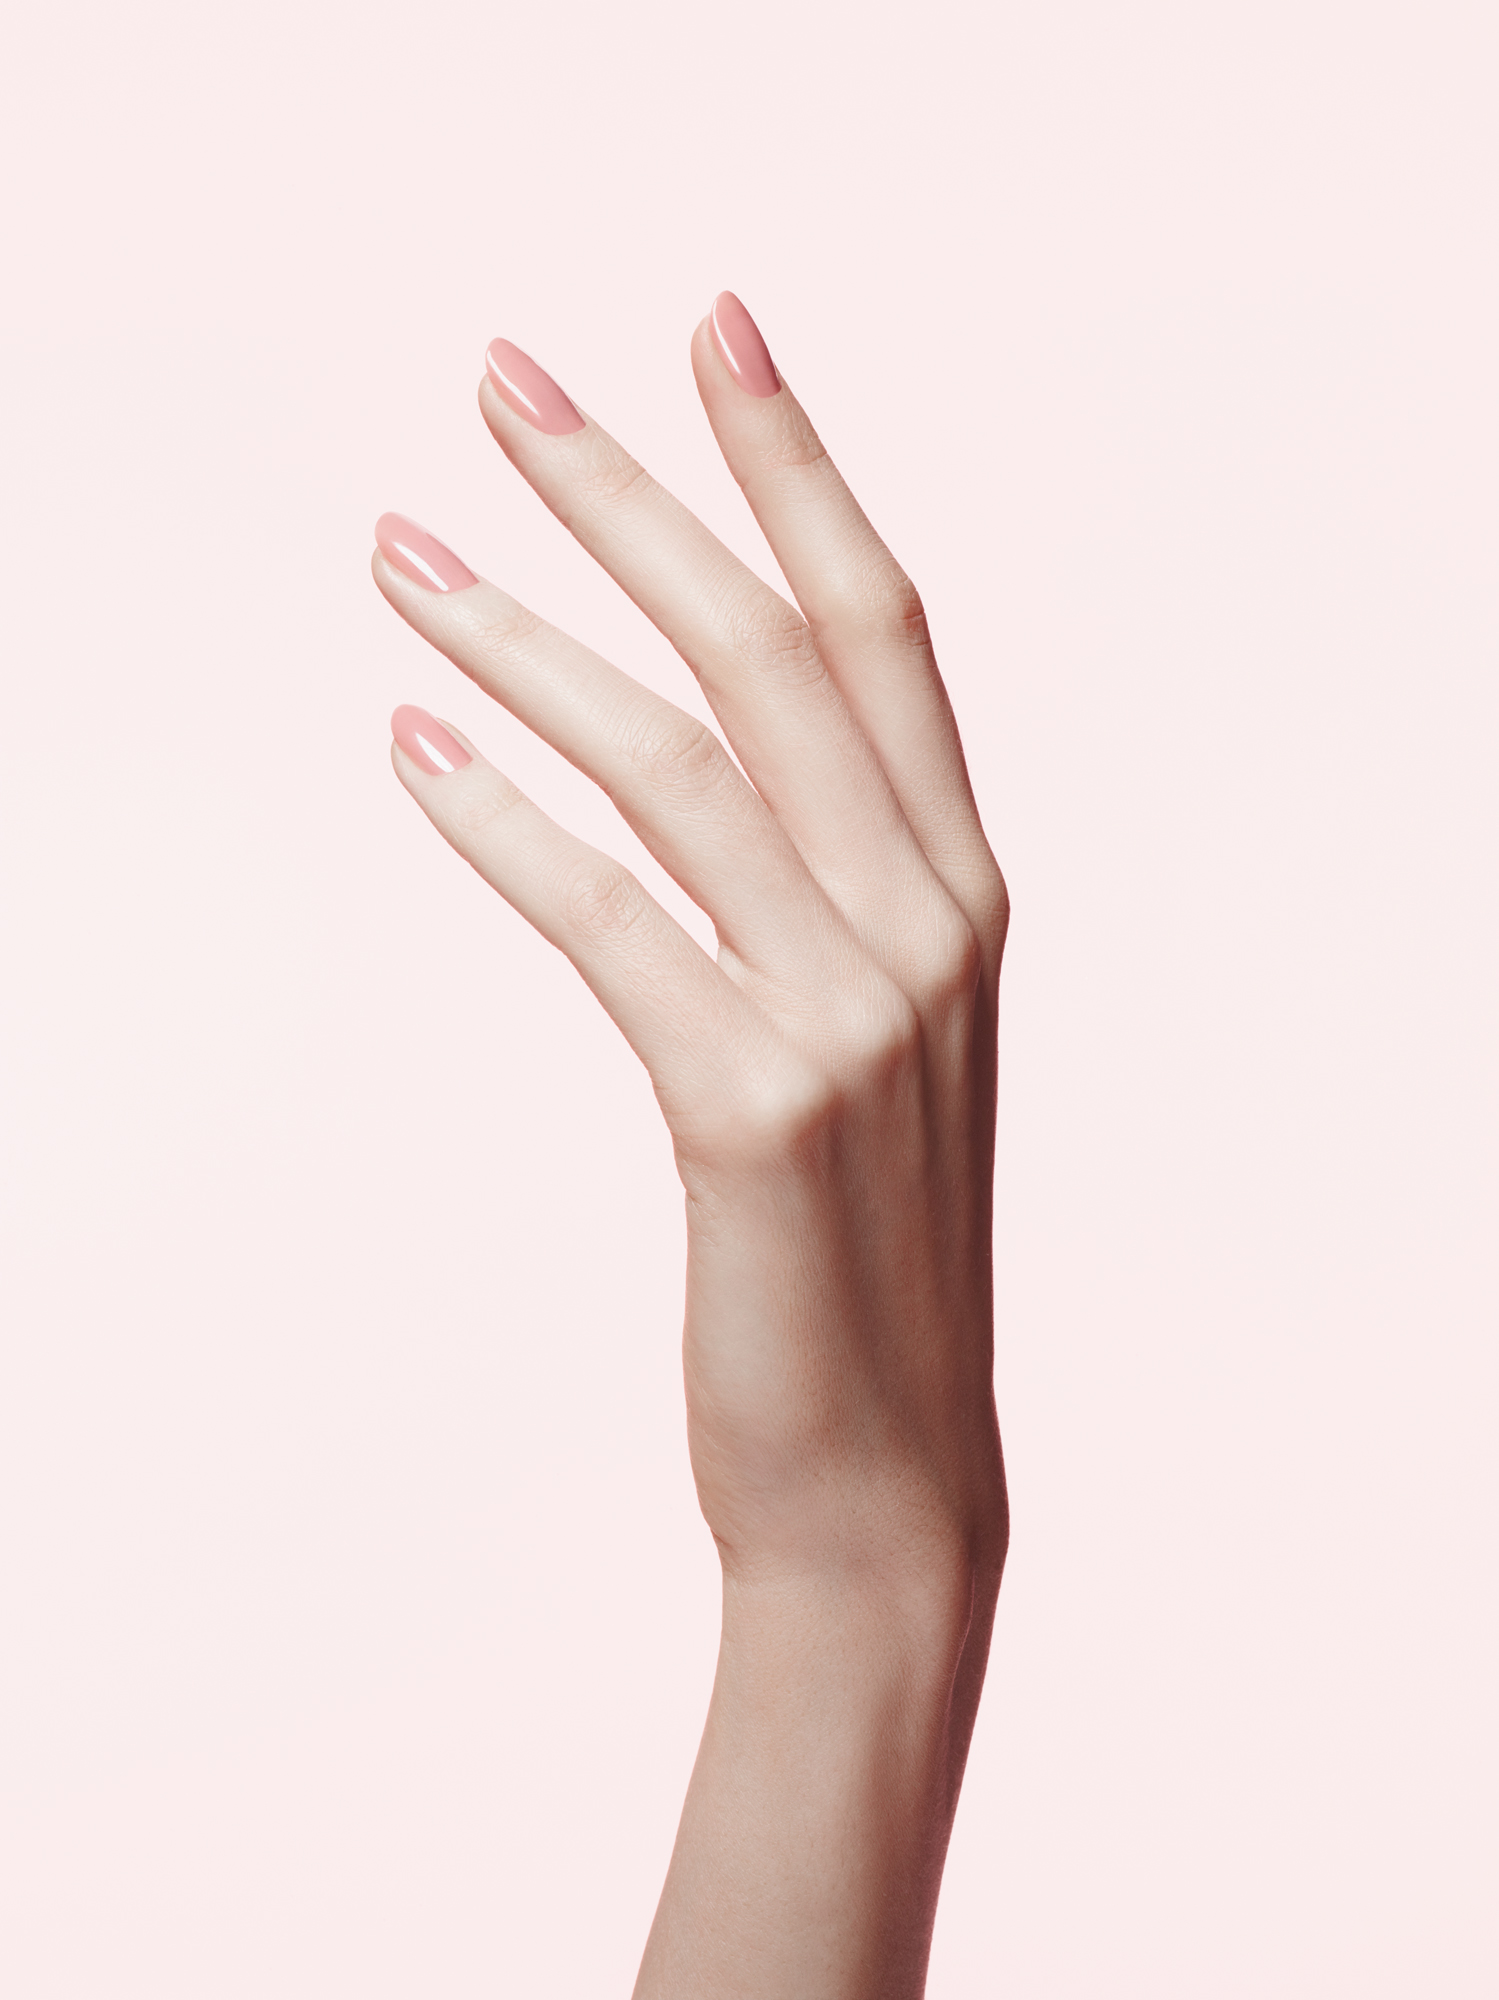 Hand with pink gel manicure